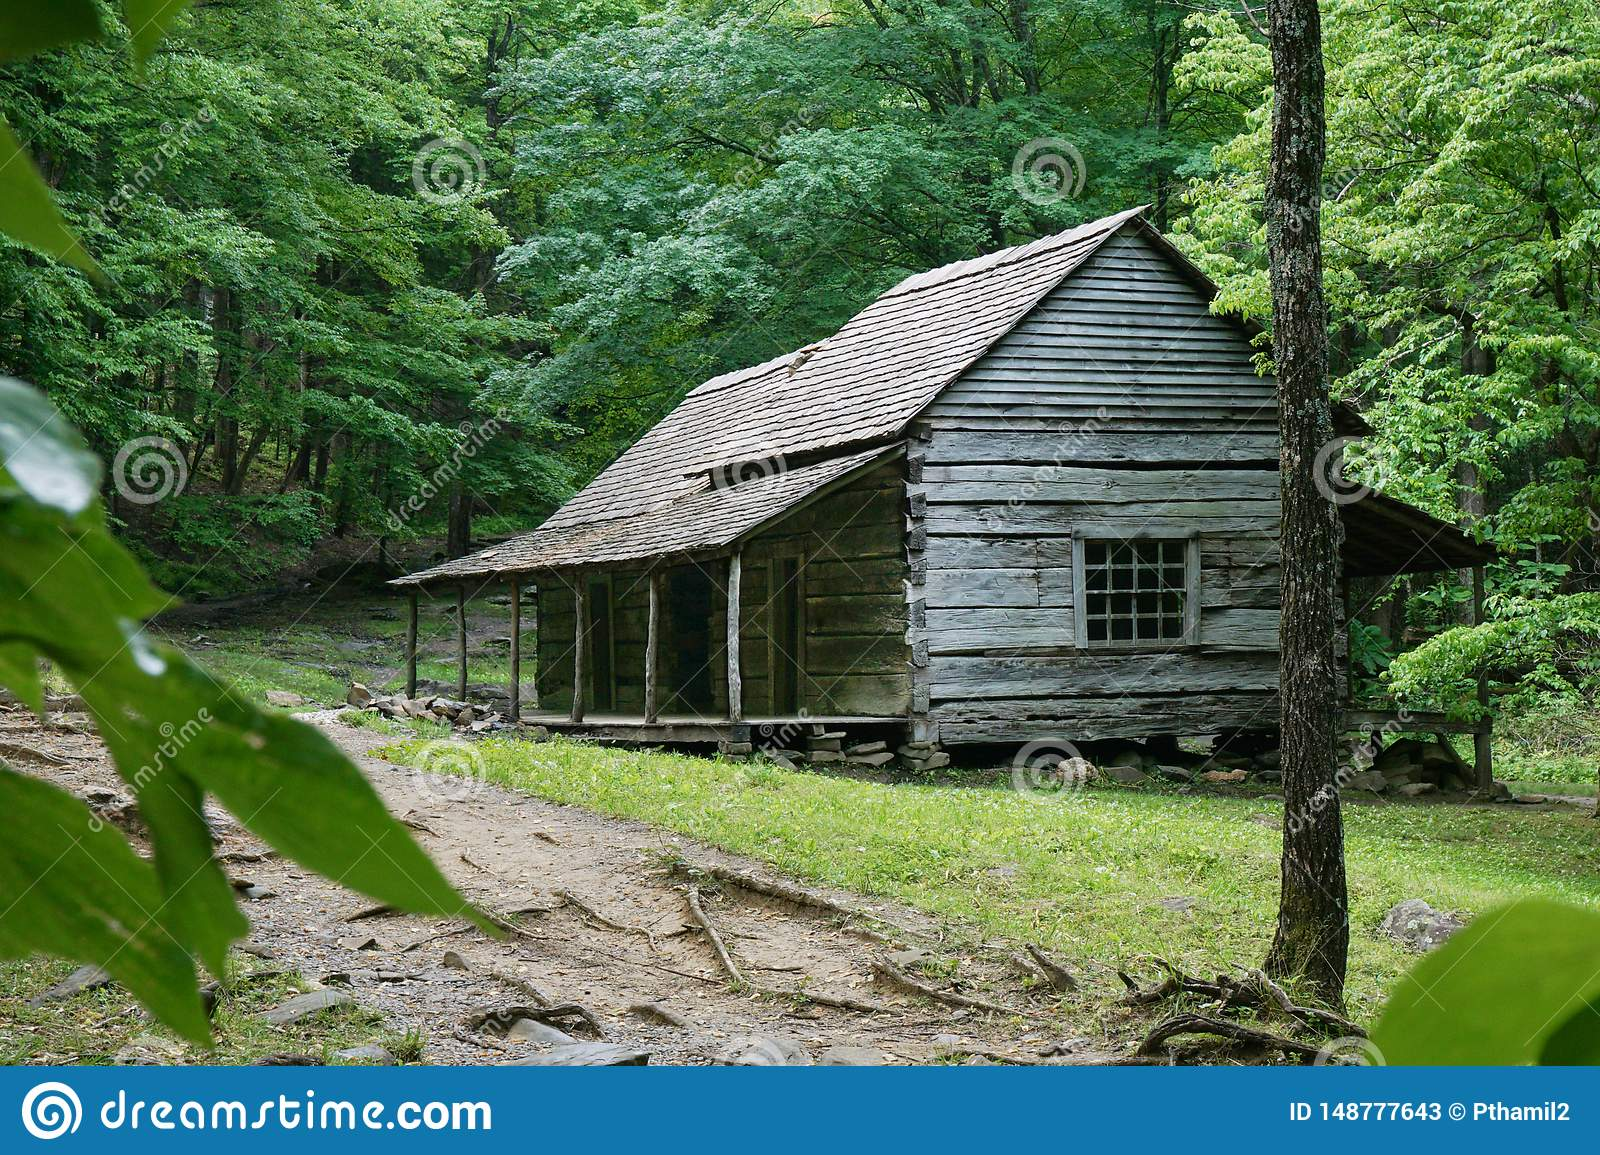 A log cabin in the Great Smoky Mountain National Park in Tennessee USA.  Noah `Bud` Ogle cabin built circa 1890.